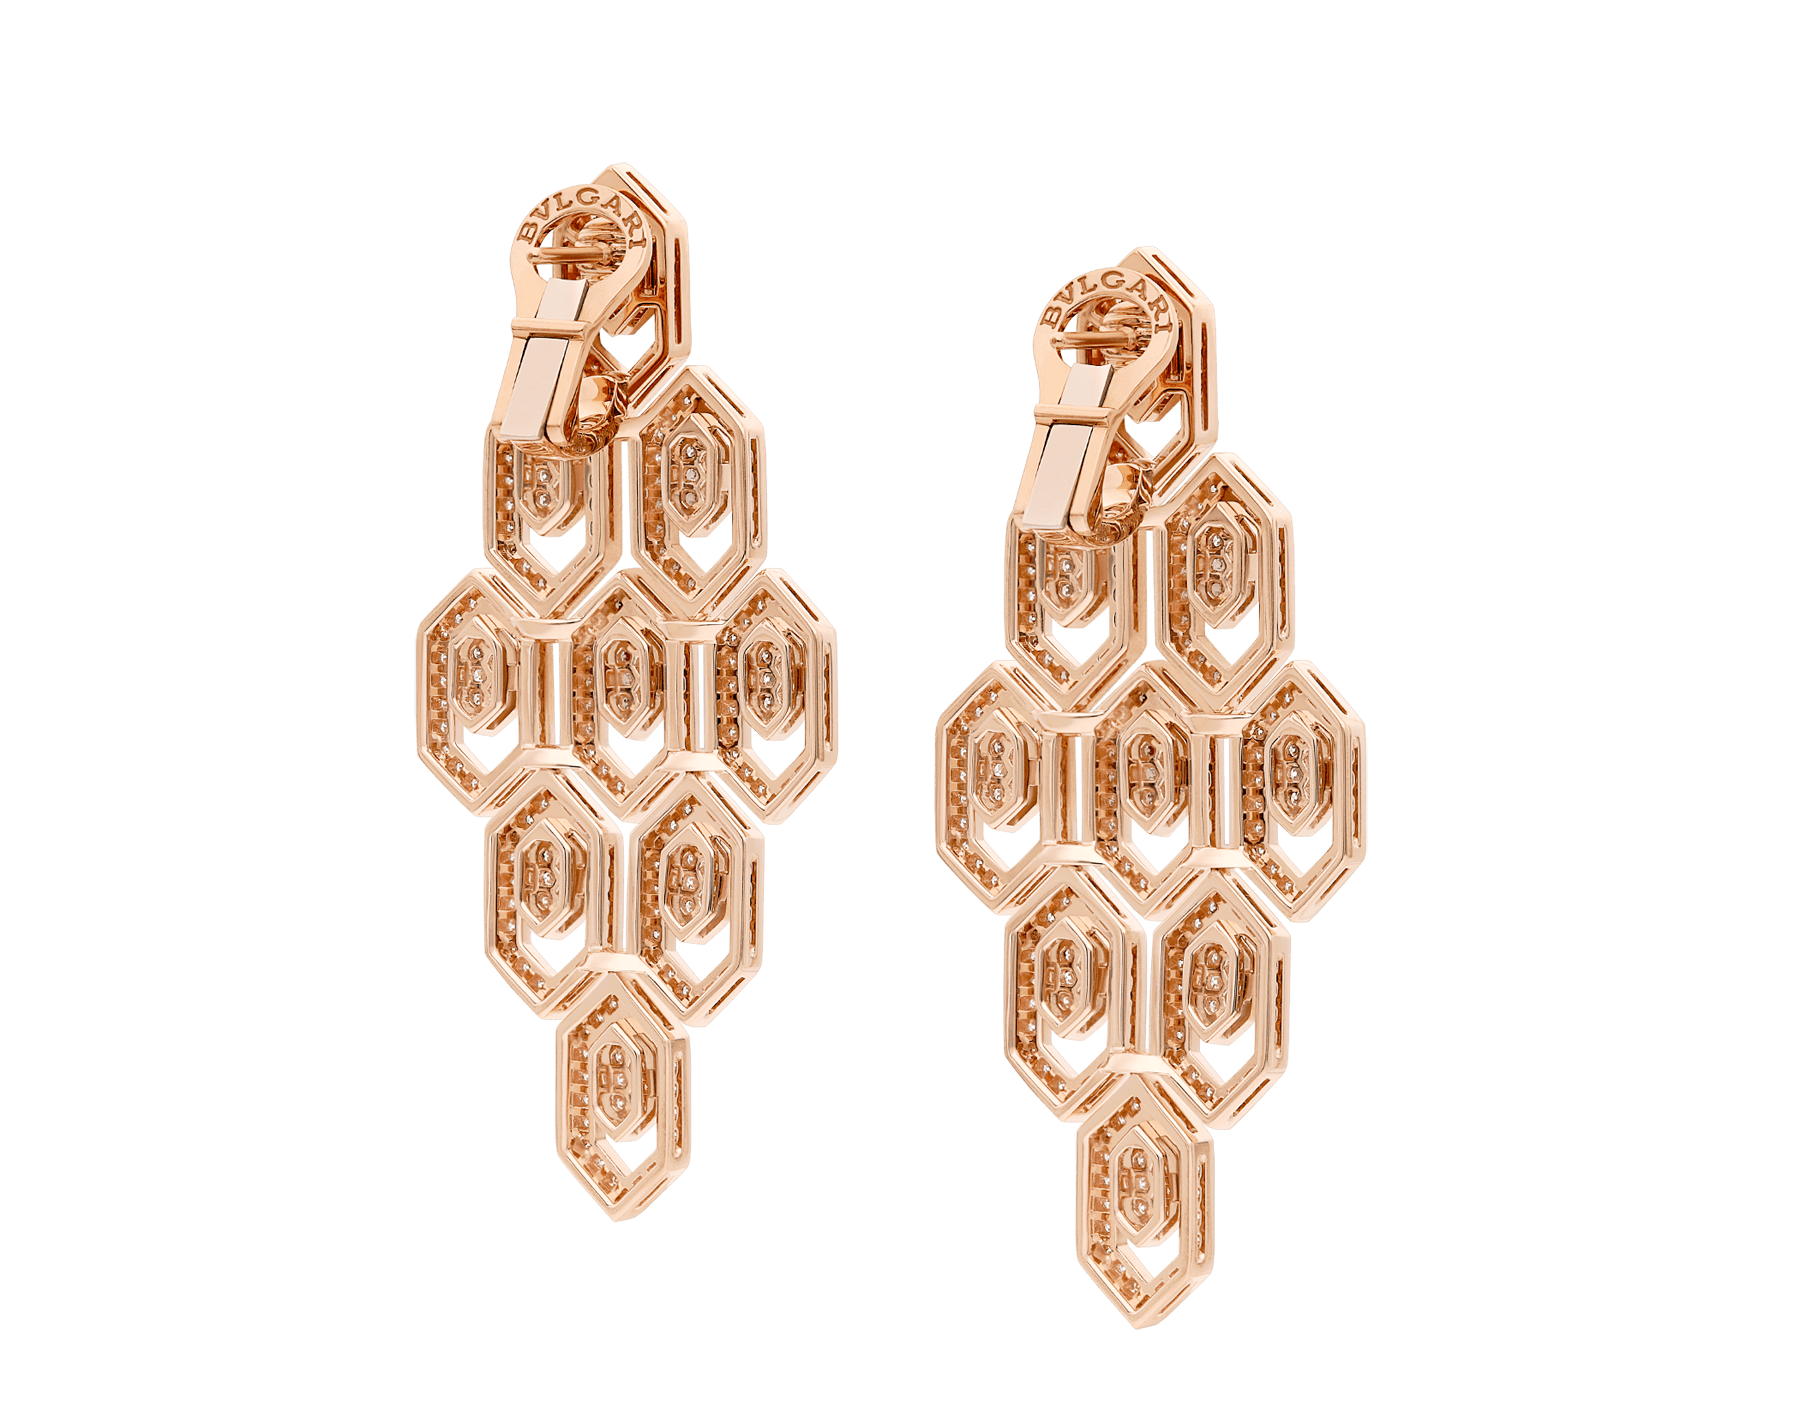 Serpenti 18 kt rose gold earrings set with pavé diamonds. 356507 image 3